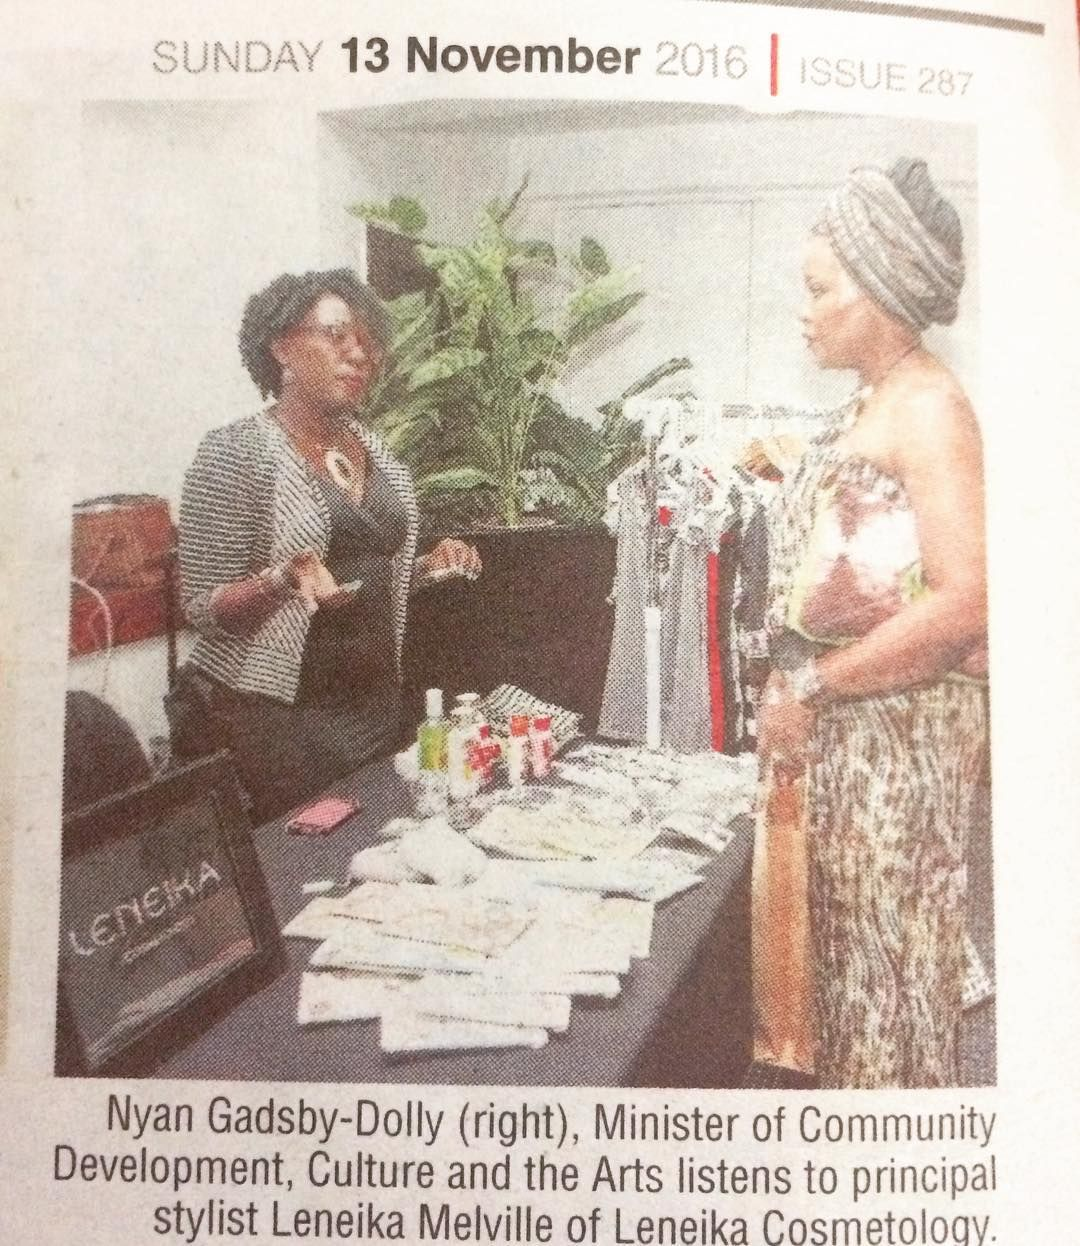 #tbt It was such an honor to chat with the honorable Minister Nyan Gadsby-Dolly on natural hair and the many options at the recent held @livestyle_life workshop.